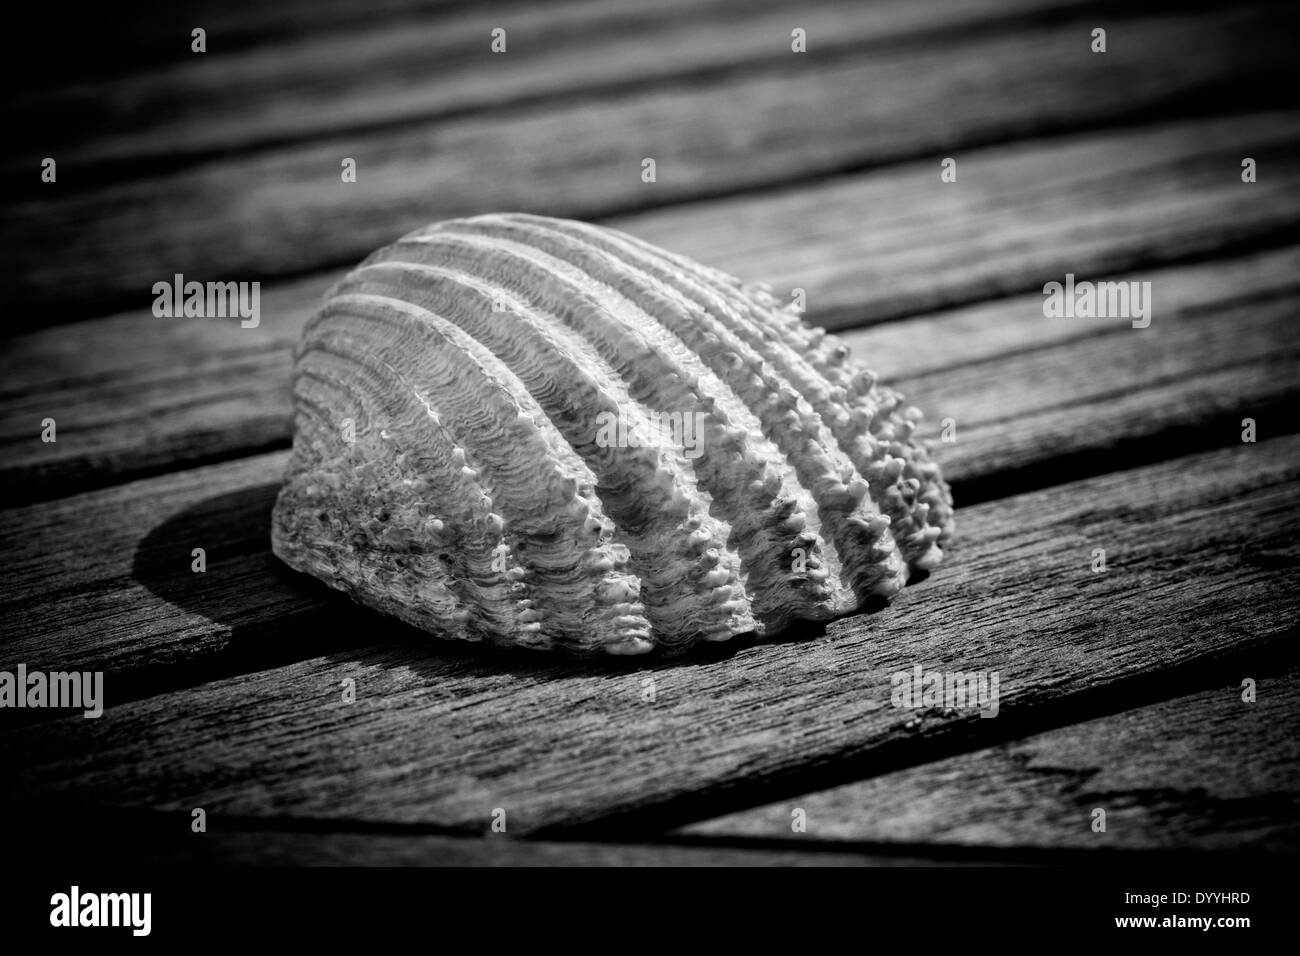 Sea shell black and white stock photos images alamy